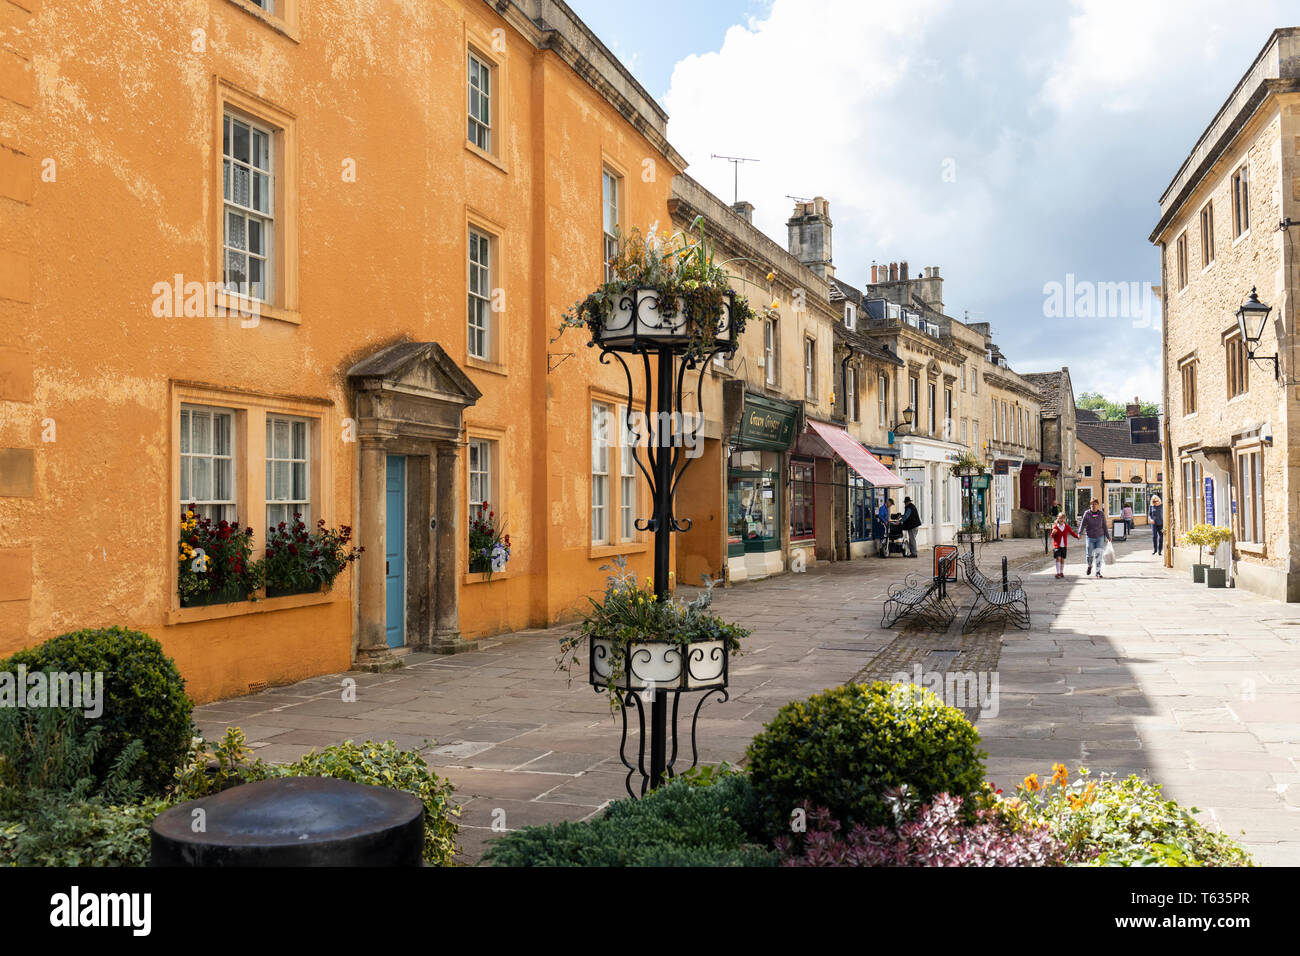 The High Street in Corsham, Wiltshire, England, UK Stock Photo